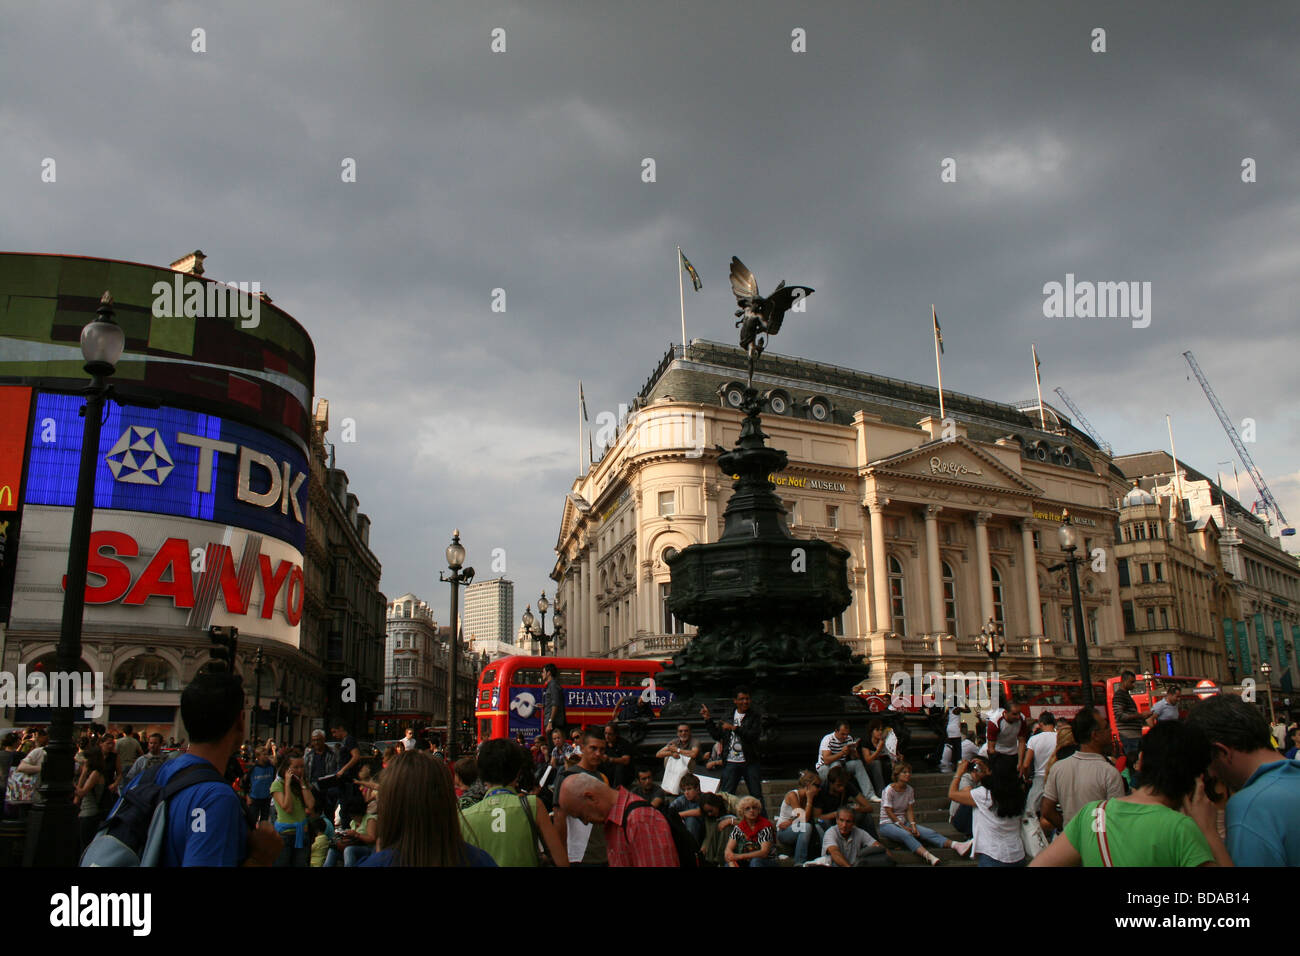 Picadilly Circus, London - Stock Image